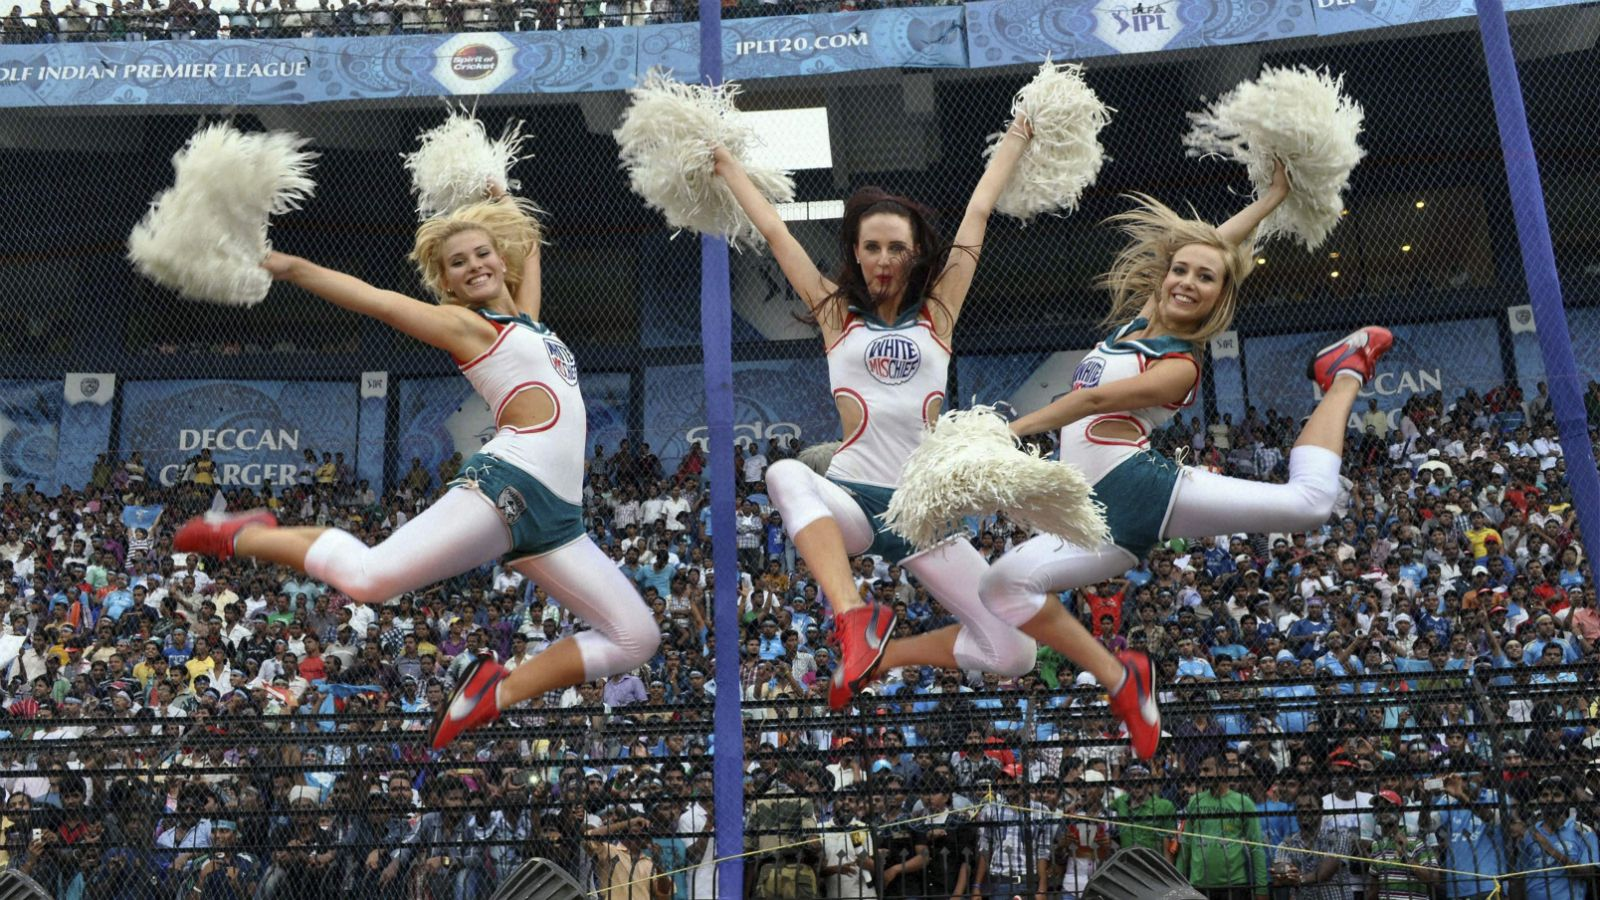 Cheerleaders perform during an Indian Premier League (IPL) match between Pune Warriors and Deccan Chargers in Cuttack, India, Tuesday, May 1, 2012.